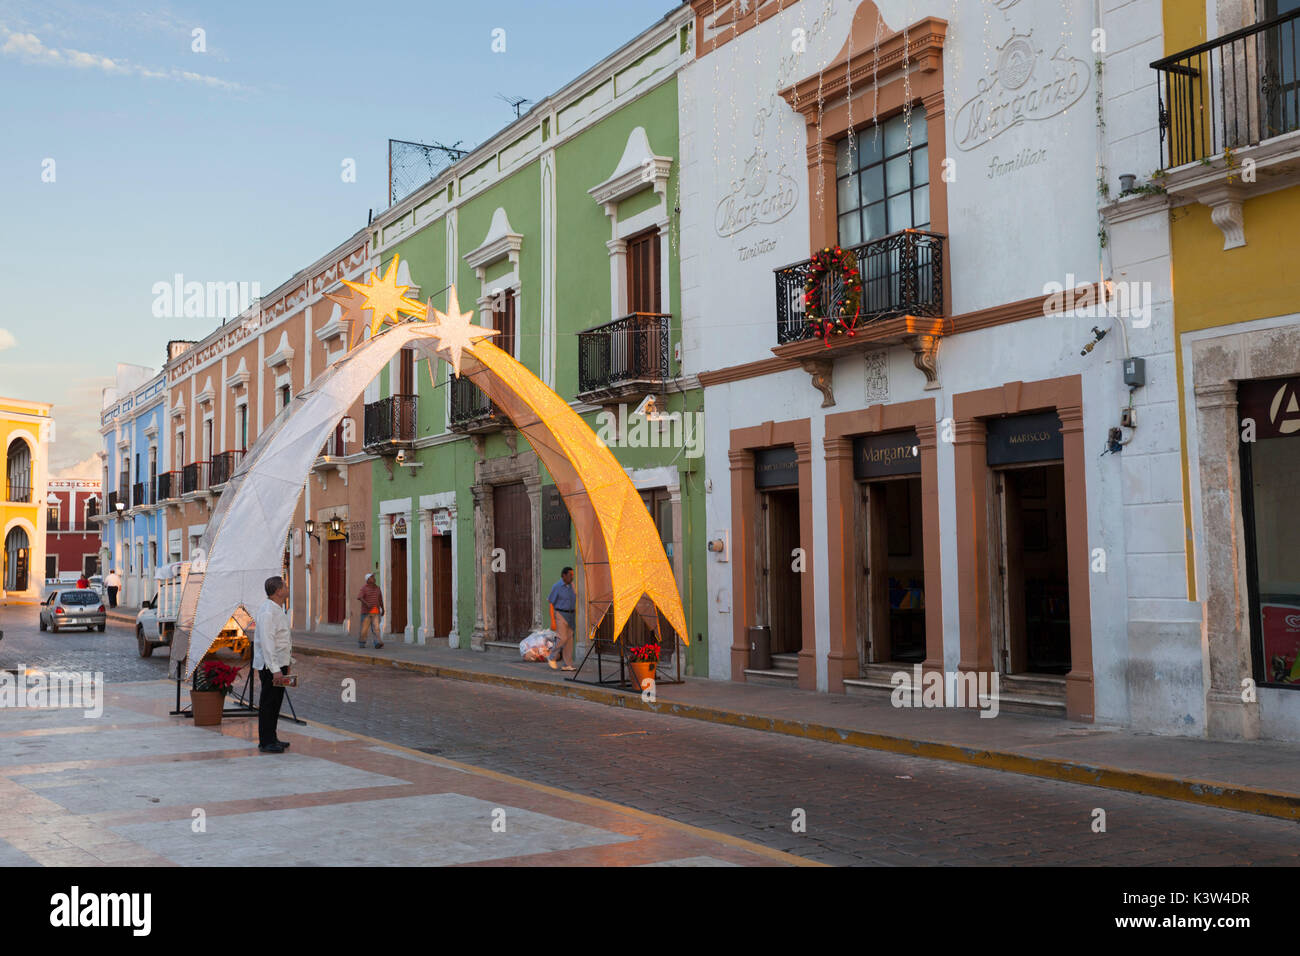 Campeche City, State of Campeche, Mexico. - Stock Image